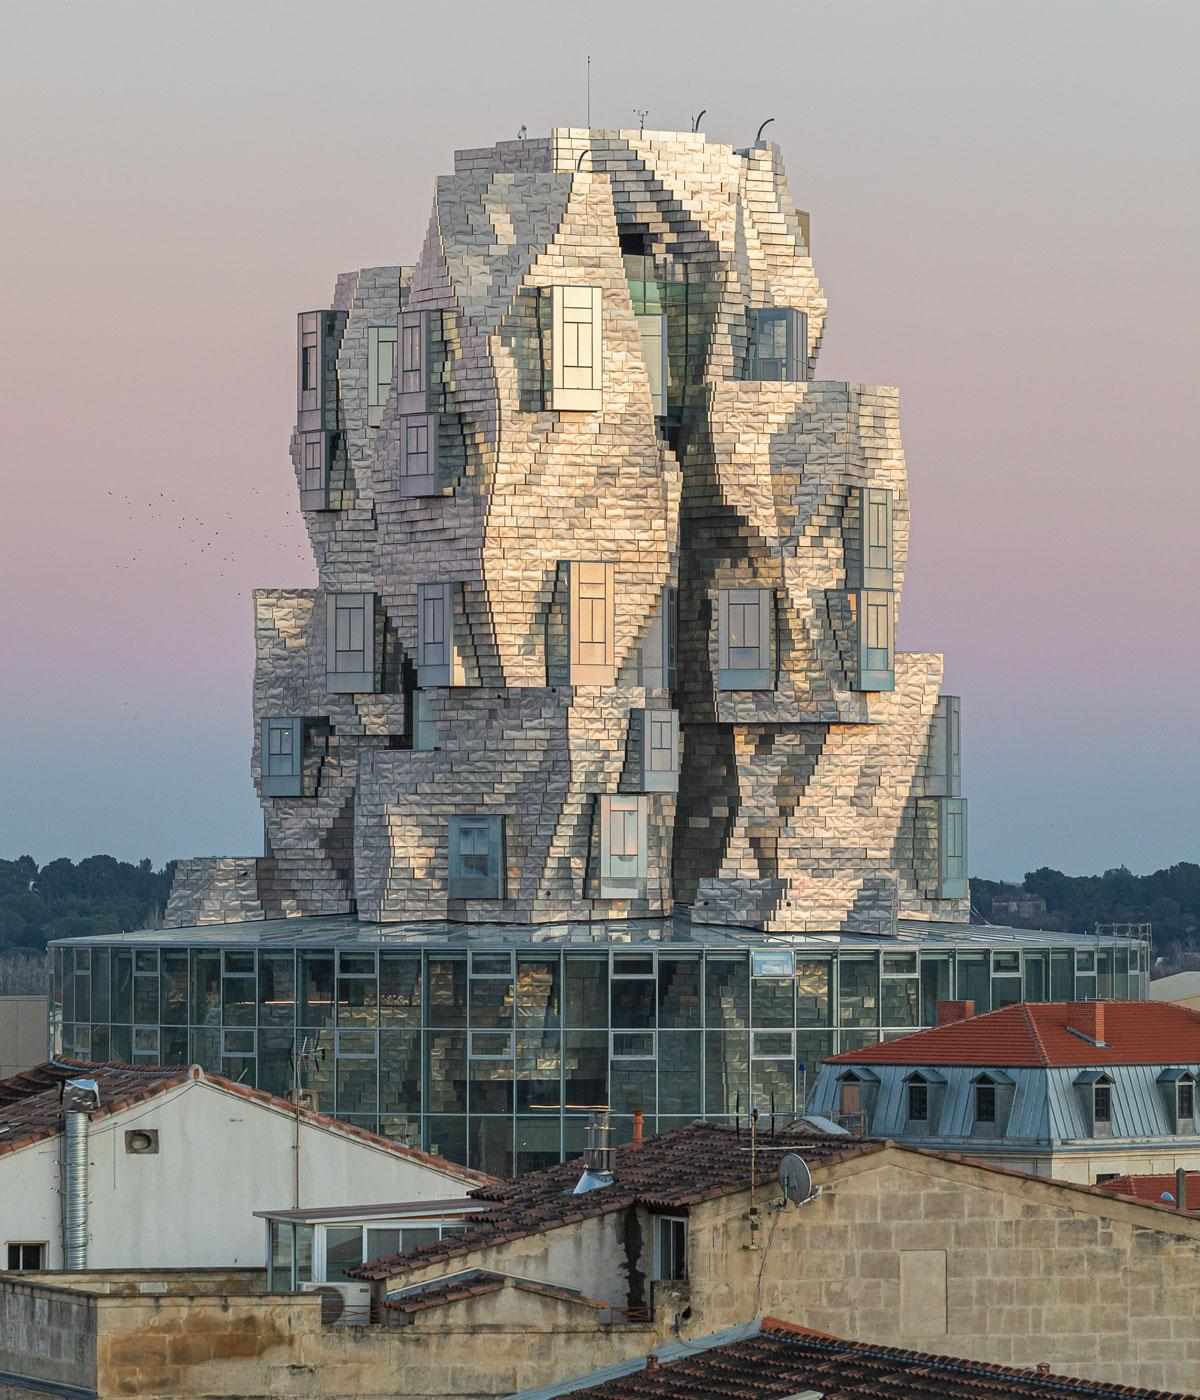 Twisting tower in stainless steel panels